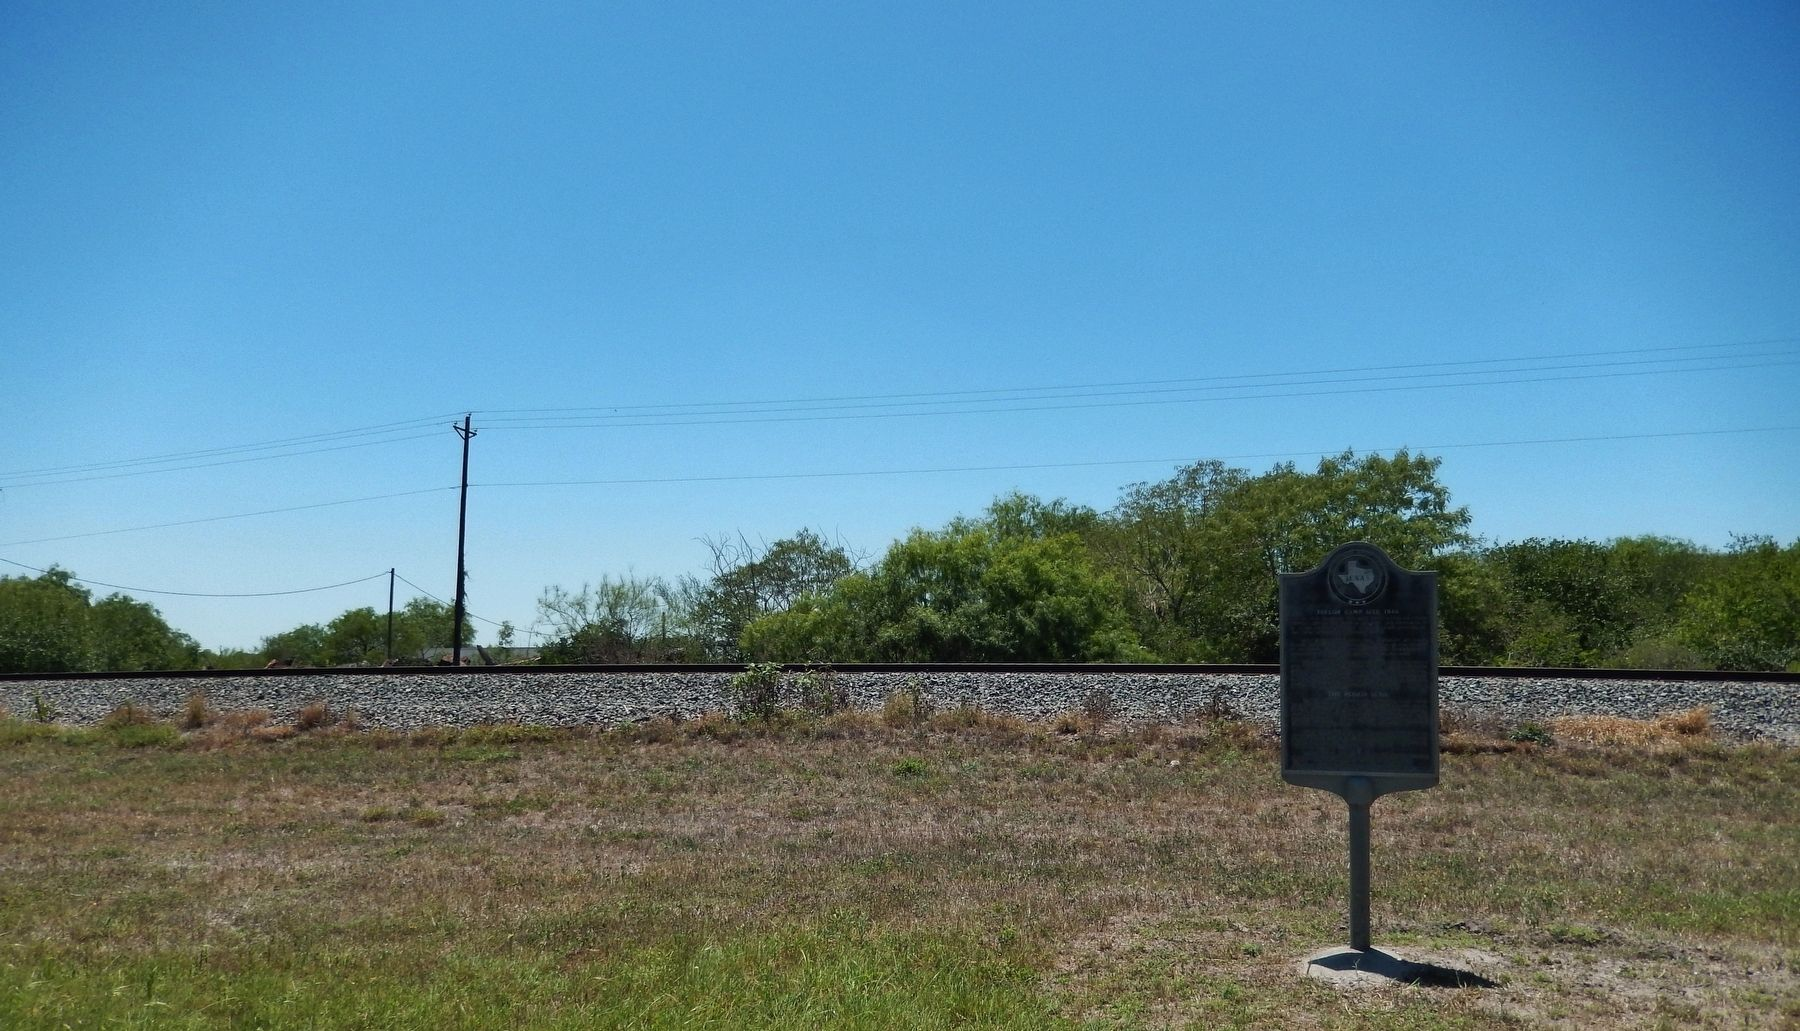 Taylor Camp Site, 1846 Marker (<i>wide view</i>) image. Click for full size.